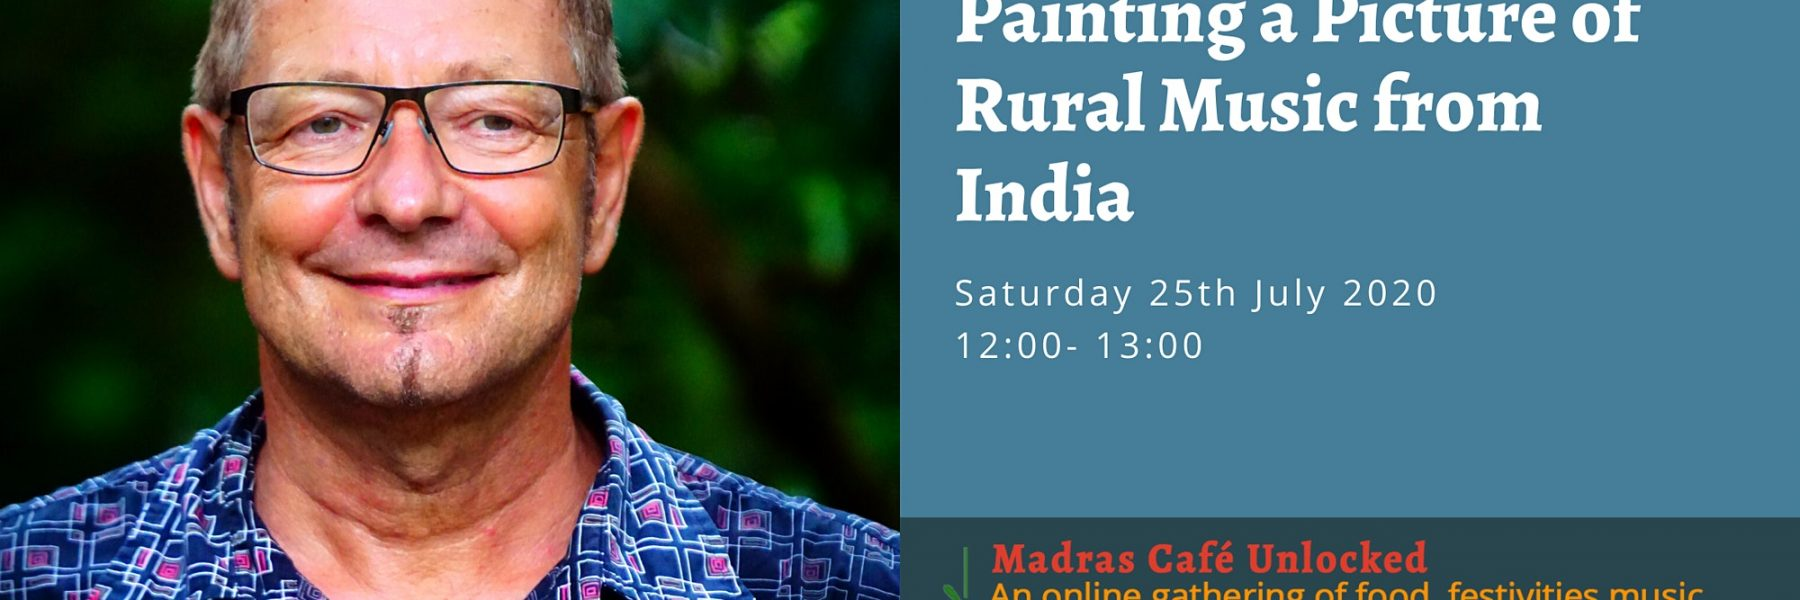 Madras Cafe Unlocked 2020: Painting a Picture of Rural Music from India with Rolf Kilius